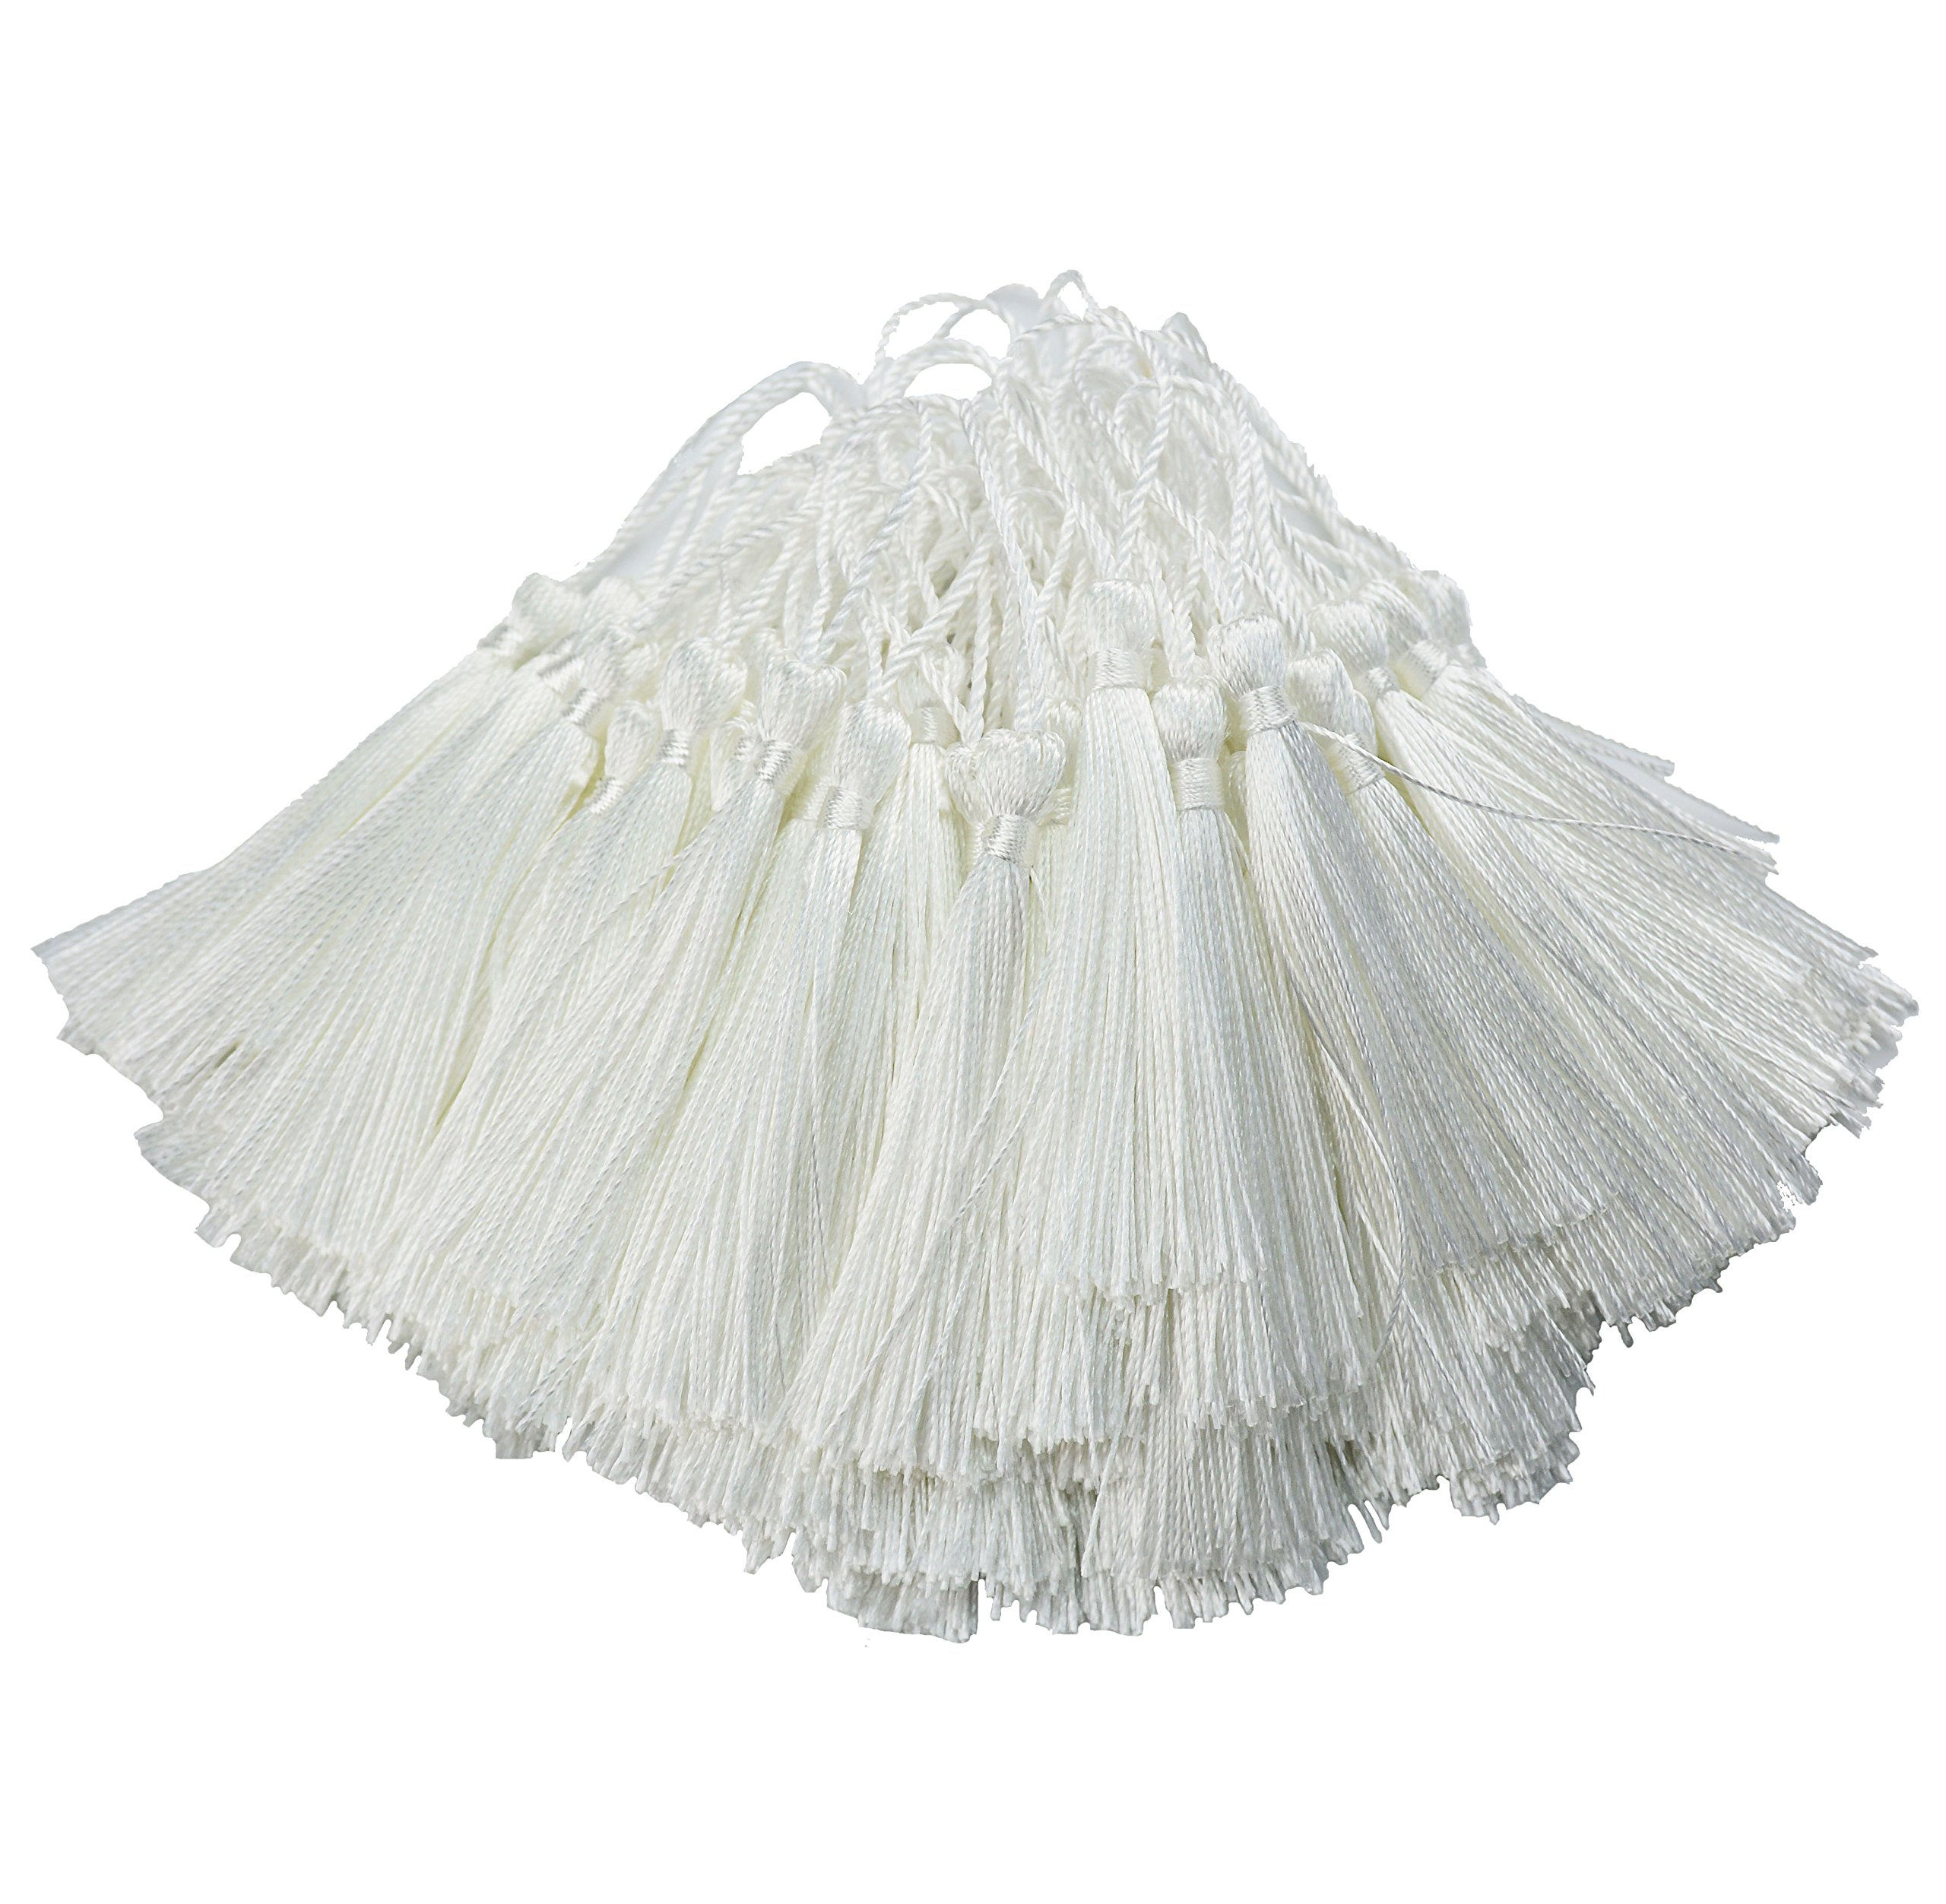 100pcs 13cm/5 Inch Silky Floss bookmark Tassels with 2-Inch Cord Loop and Small Chinese Knot for Jewelry Making, Souvenir, Bookmarks, DIY Craft Accessory (White)